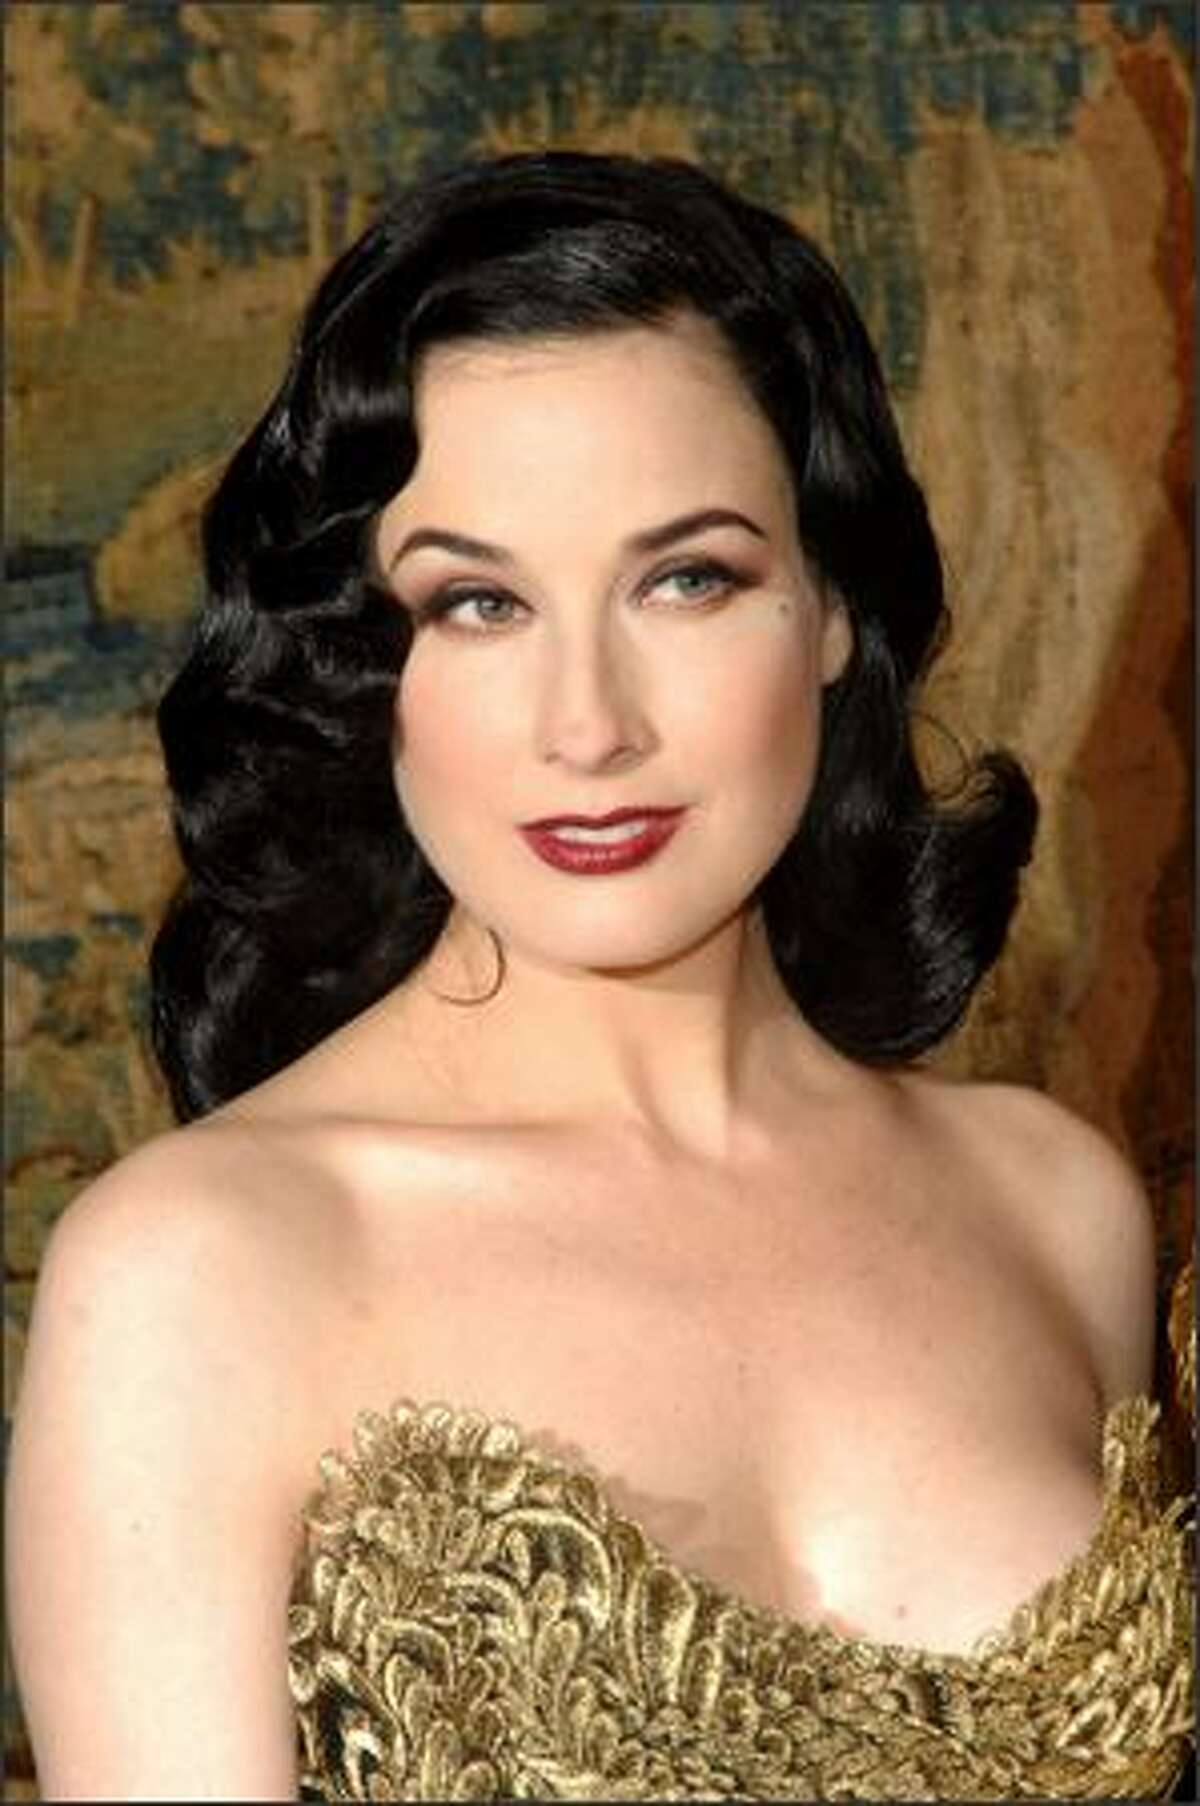 Performance artist Dita Von Teese attends the